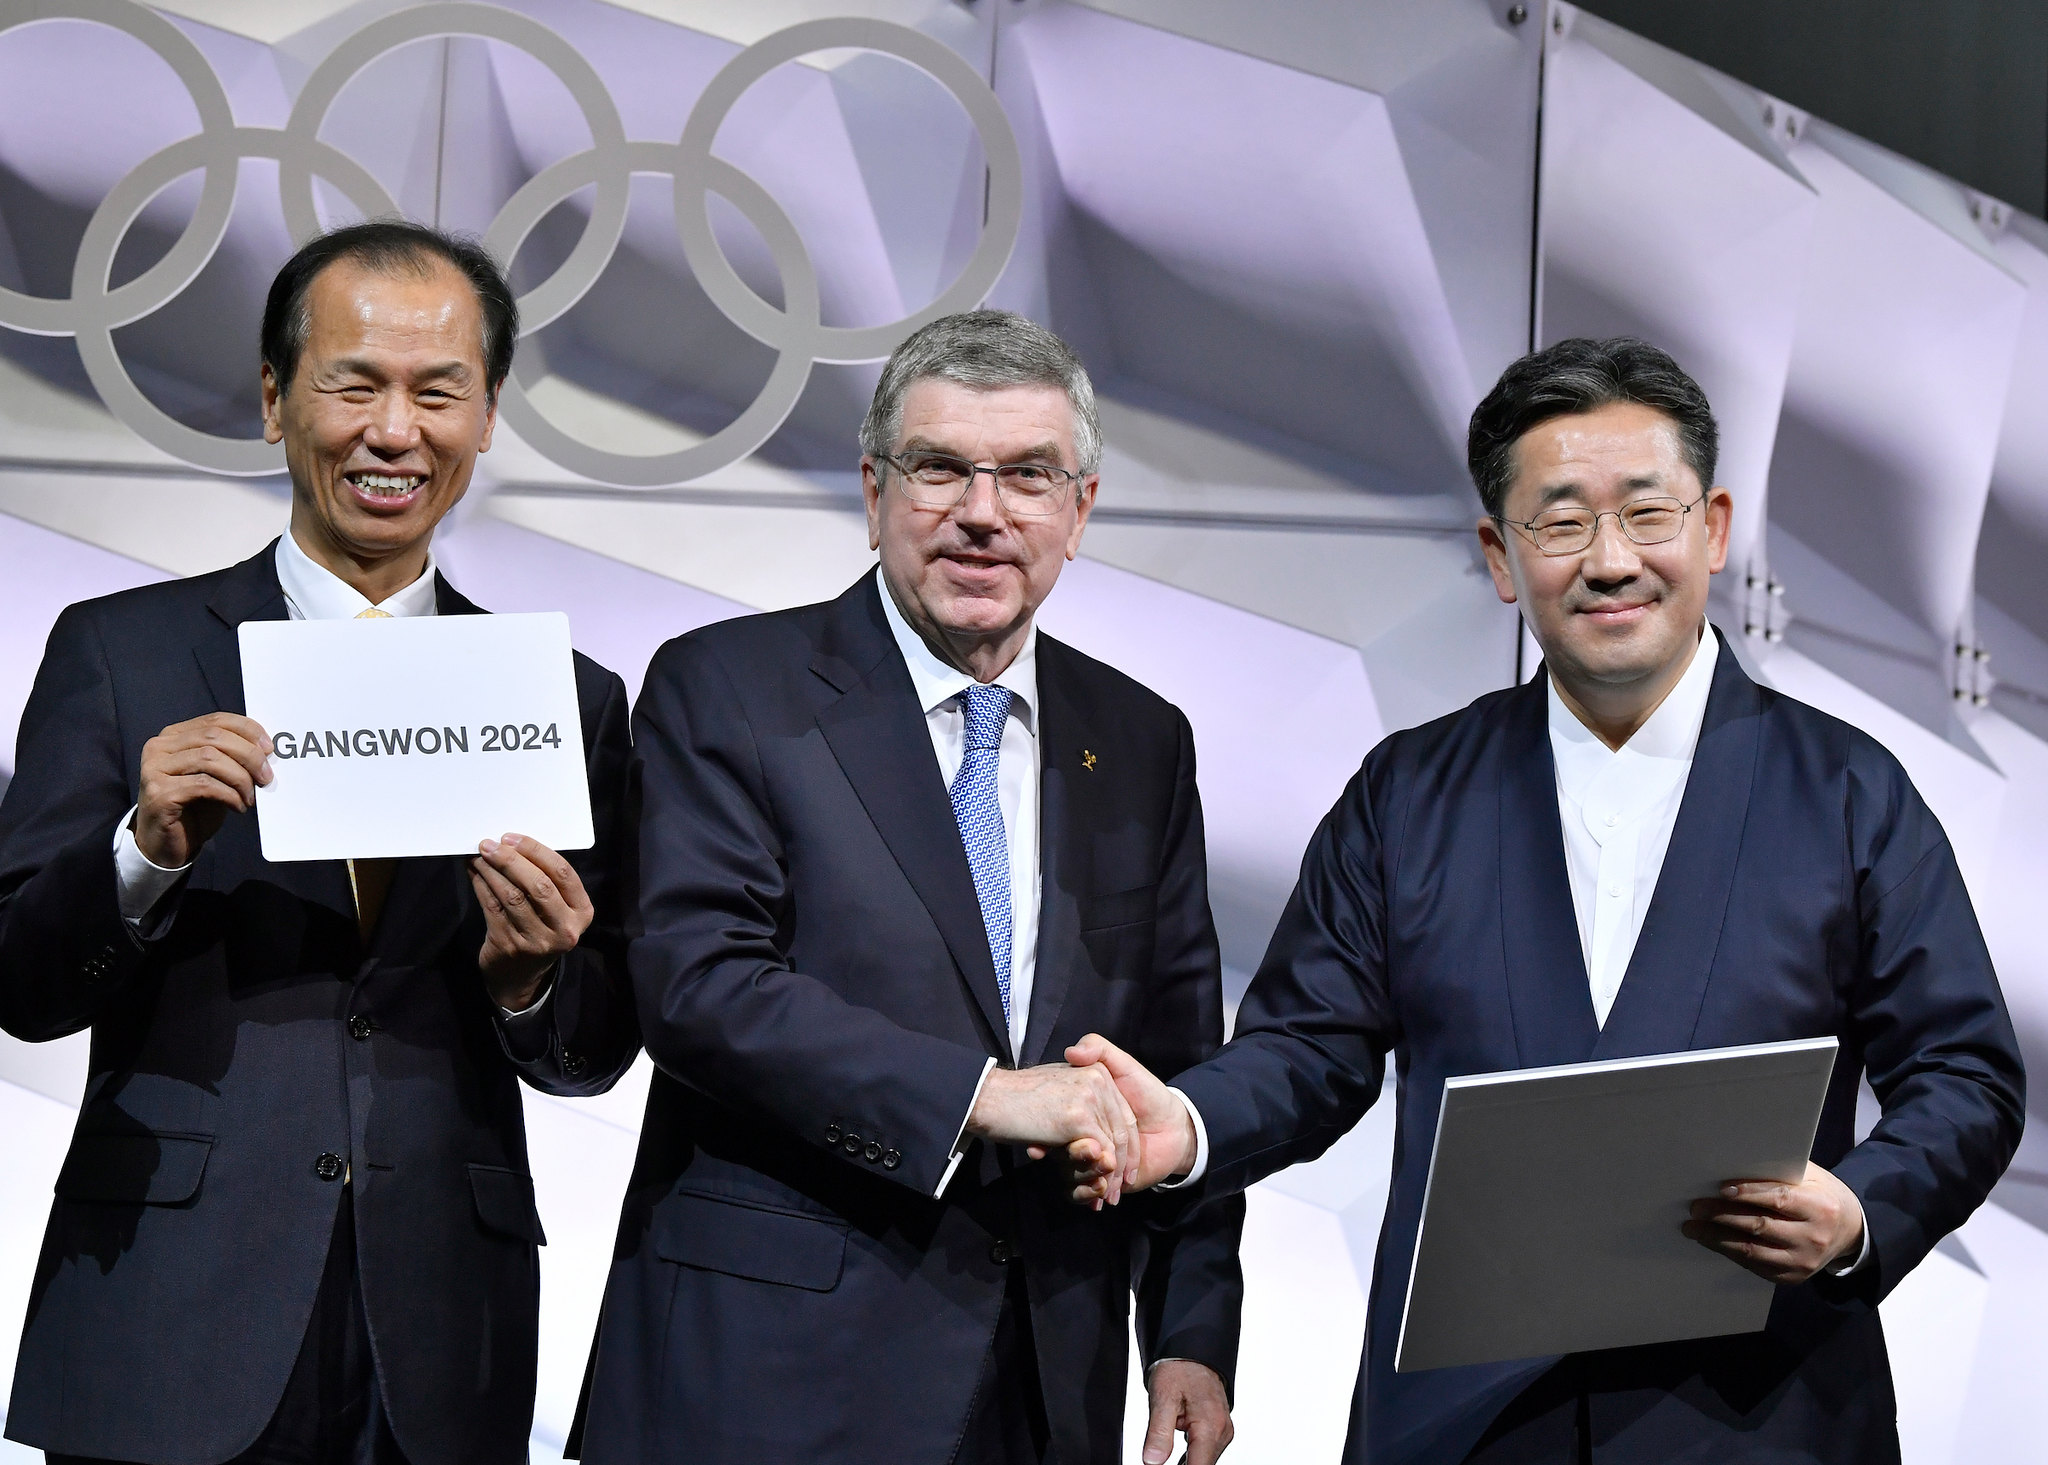 IOC President Thomas Bach during the 135th IOC Session